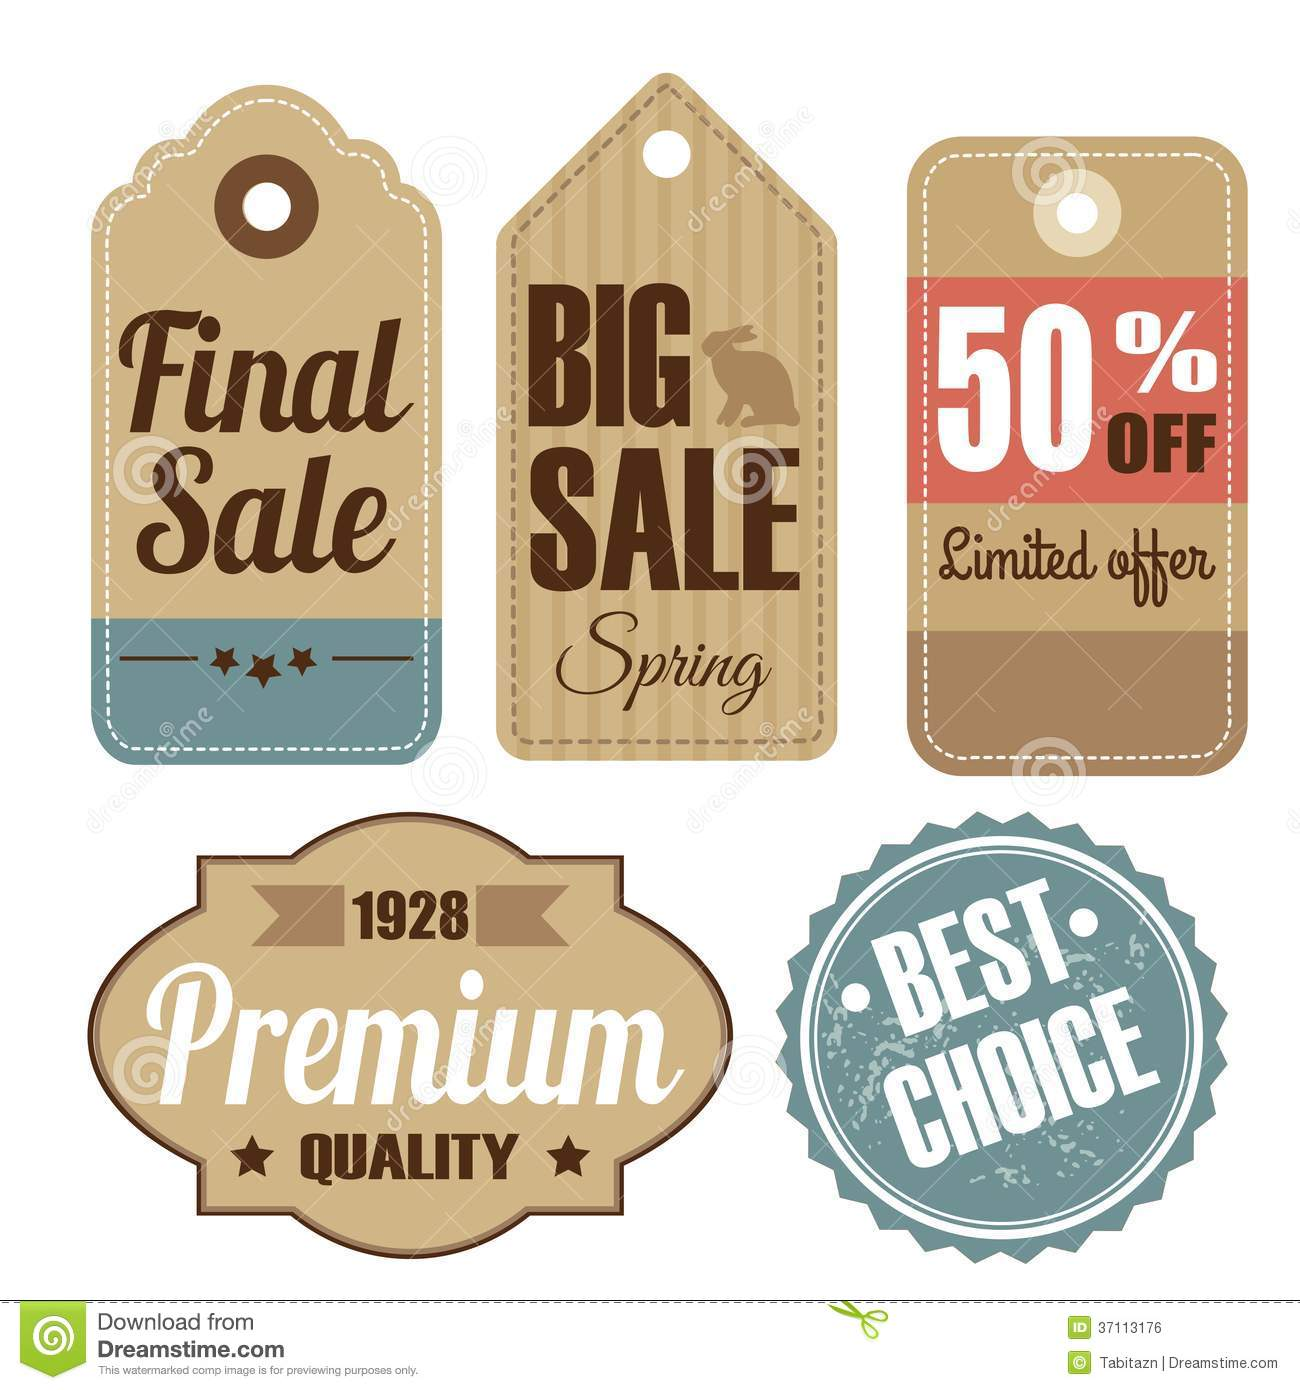 Retro Set Of Vintage Sale And Quality Labels, Card Royalty Free Stock ...